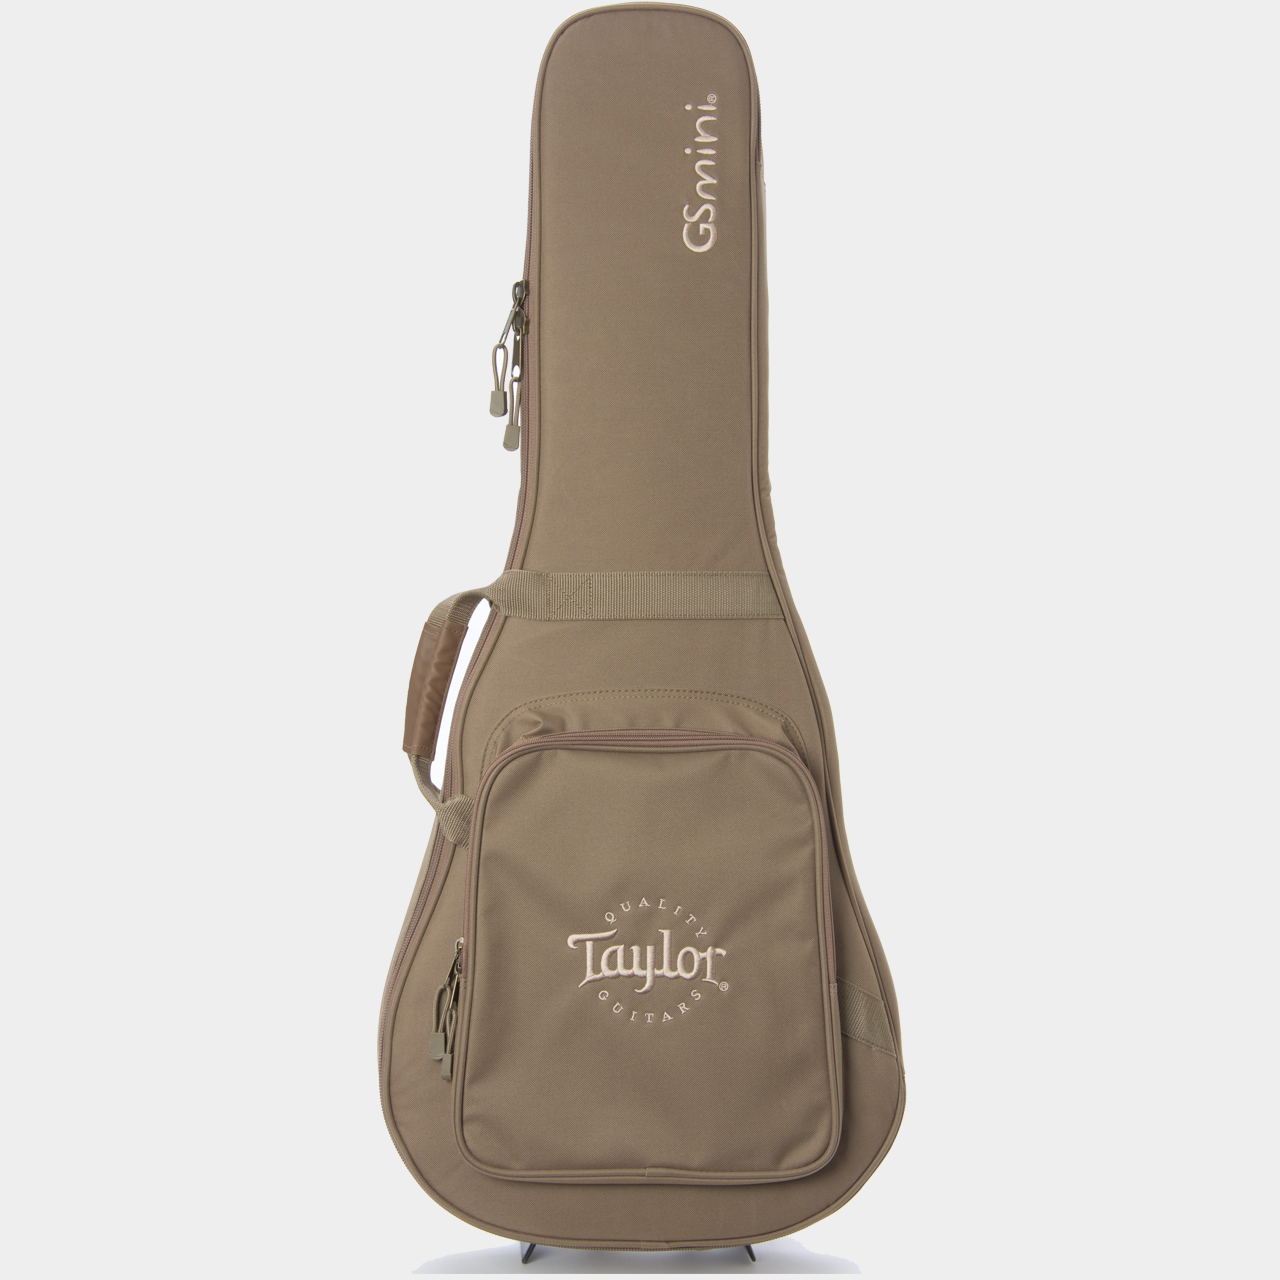 Die Taylor GS-Mini kommt inklusive Taylor Deluxe Softcase